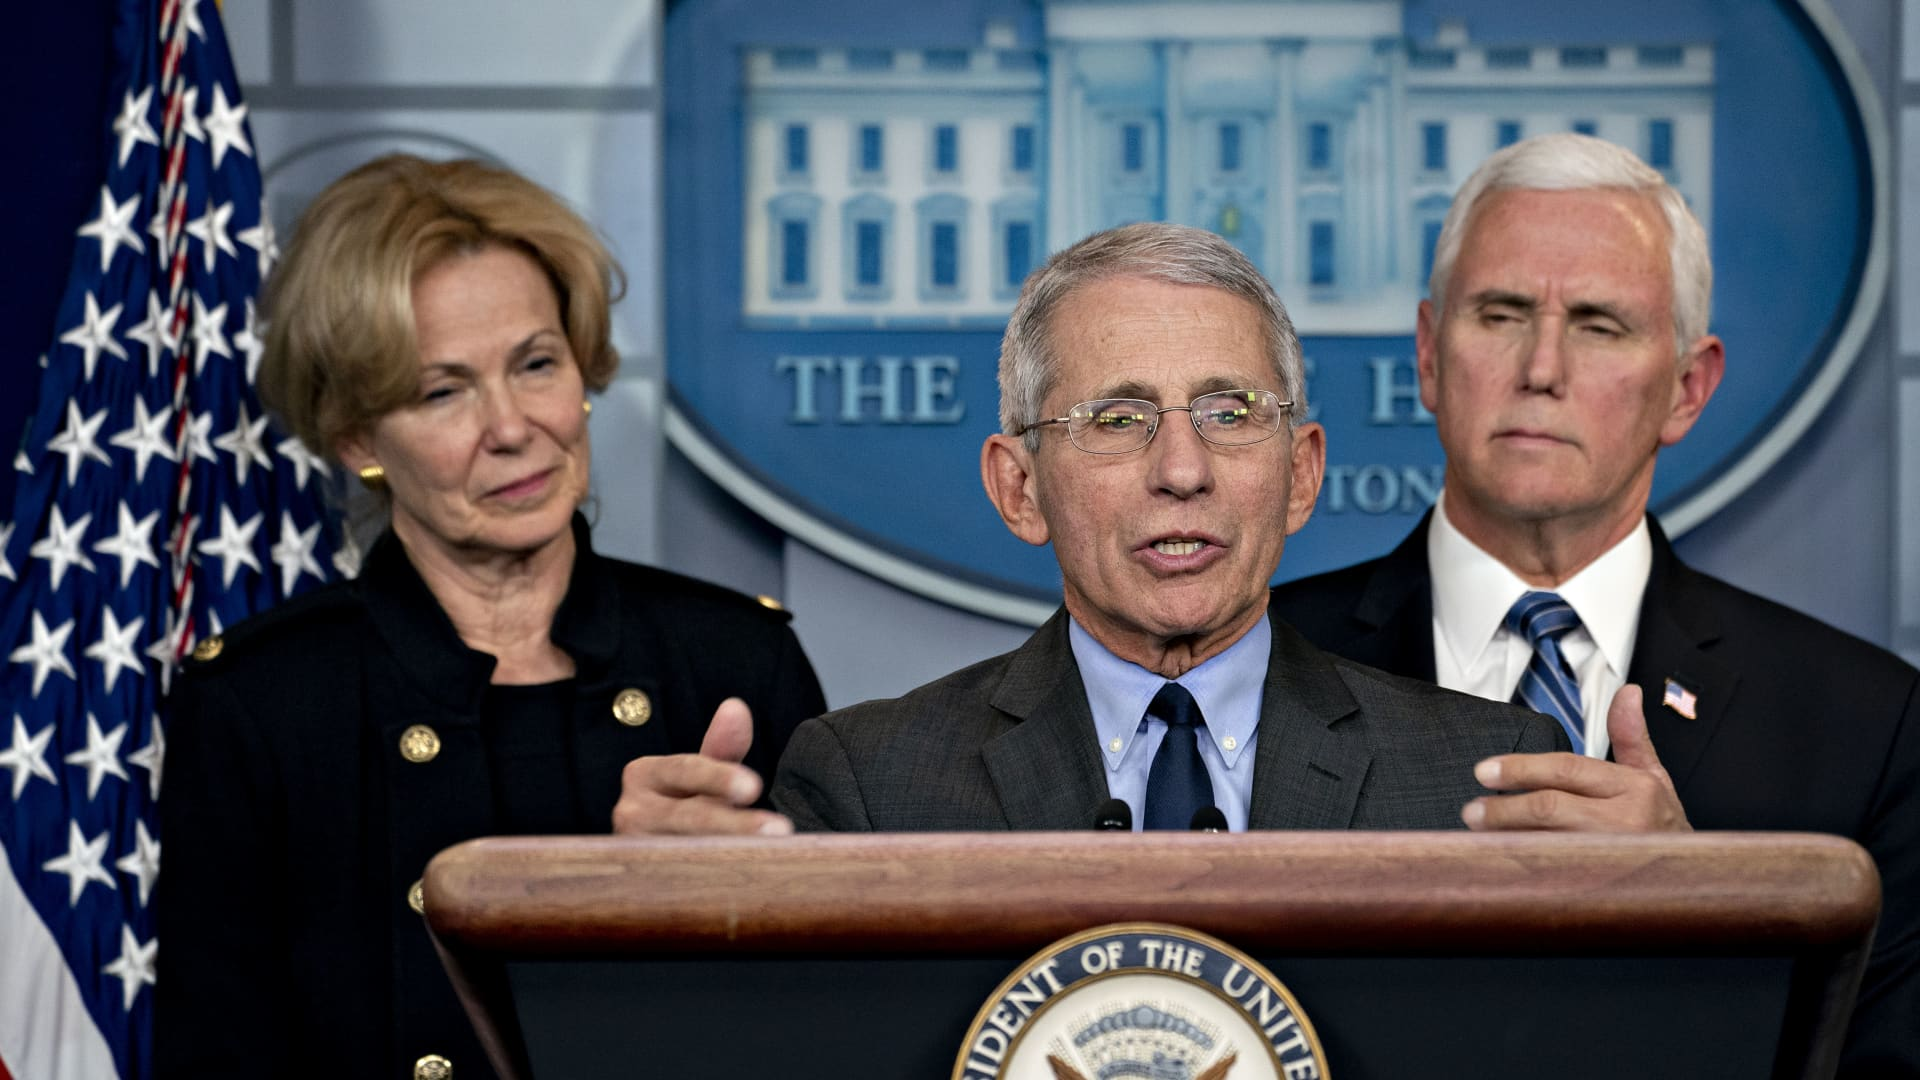 Anthony Fauci, director of the National Institute of Allergy and Infectious Diseases, center, speaks as U.S. Vice President Mike Pence, right, and Deborah Birx, coronavirus response coordinator, listen during a news conference in the briefing room of the White House in Washington, D.C., U.S., on Monday, March 2, 2020.